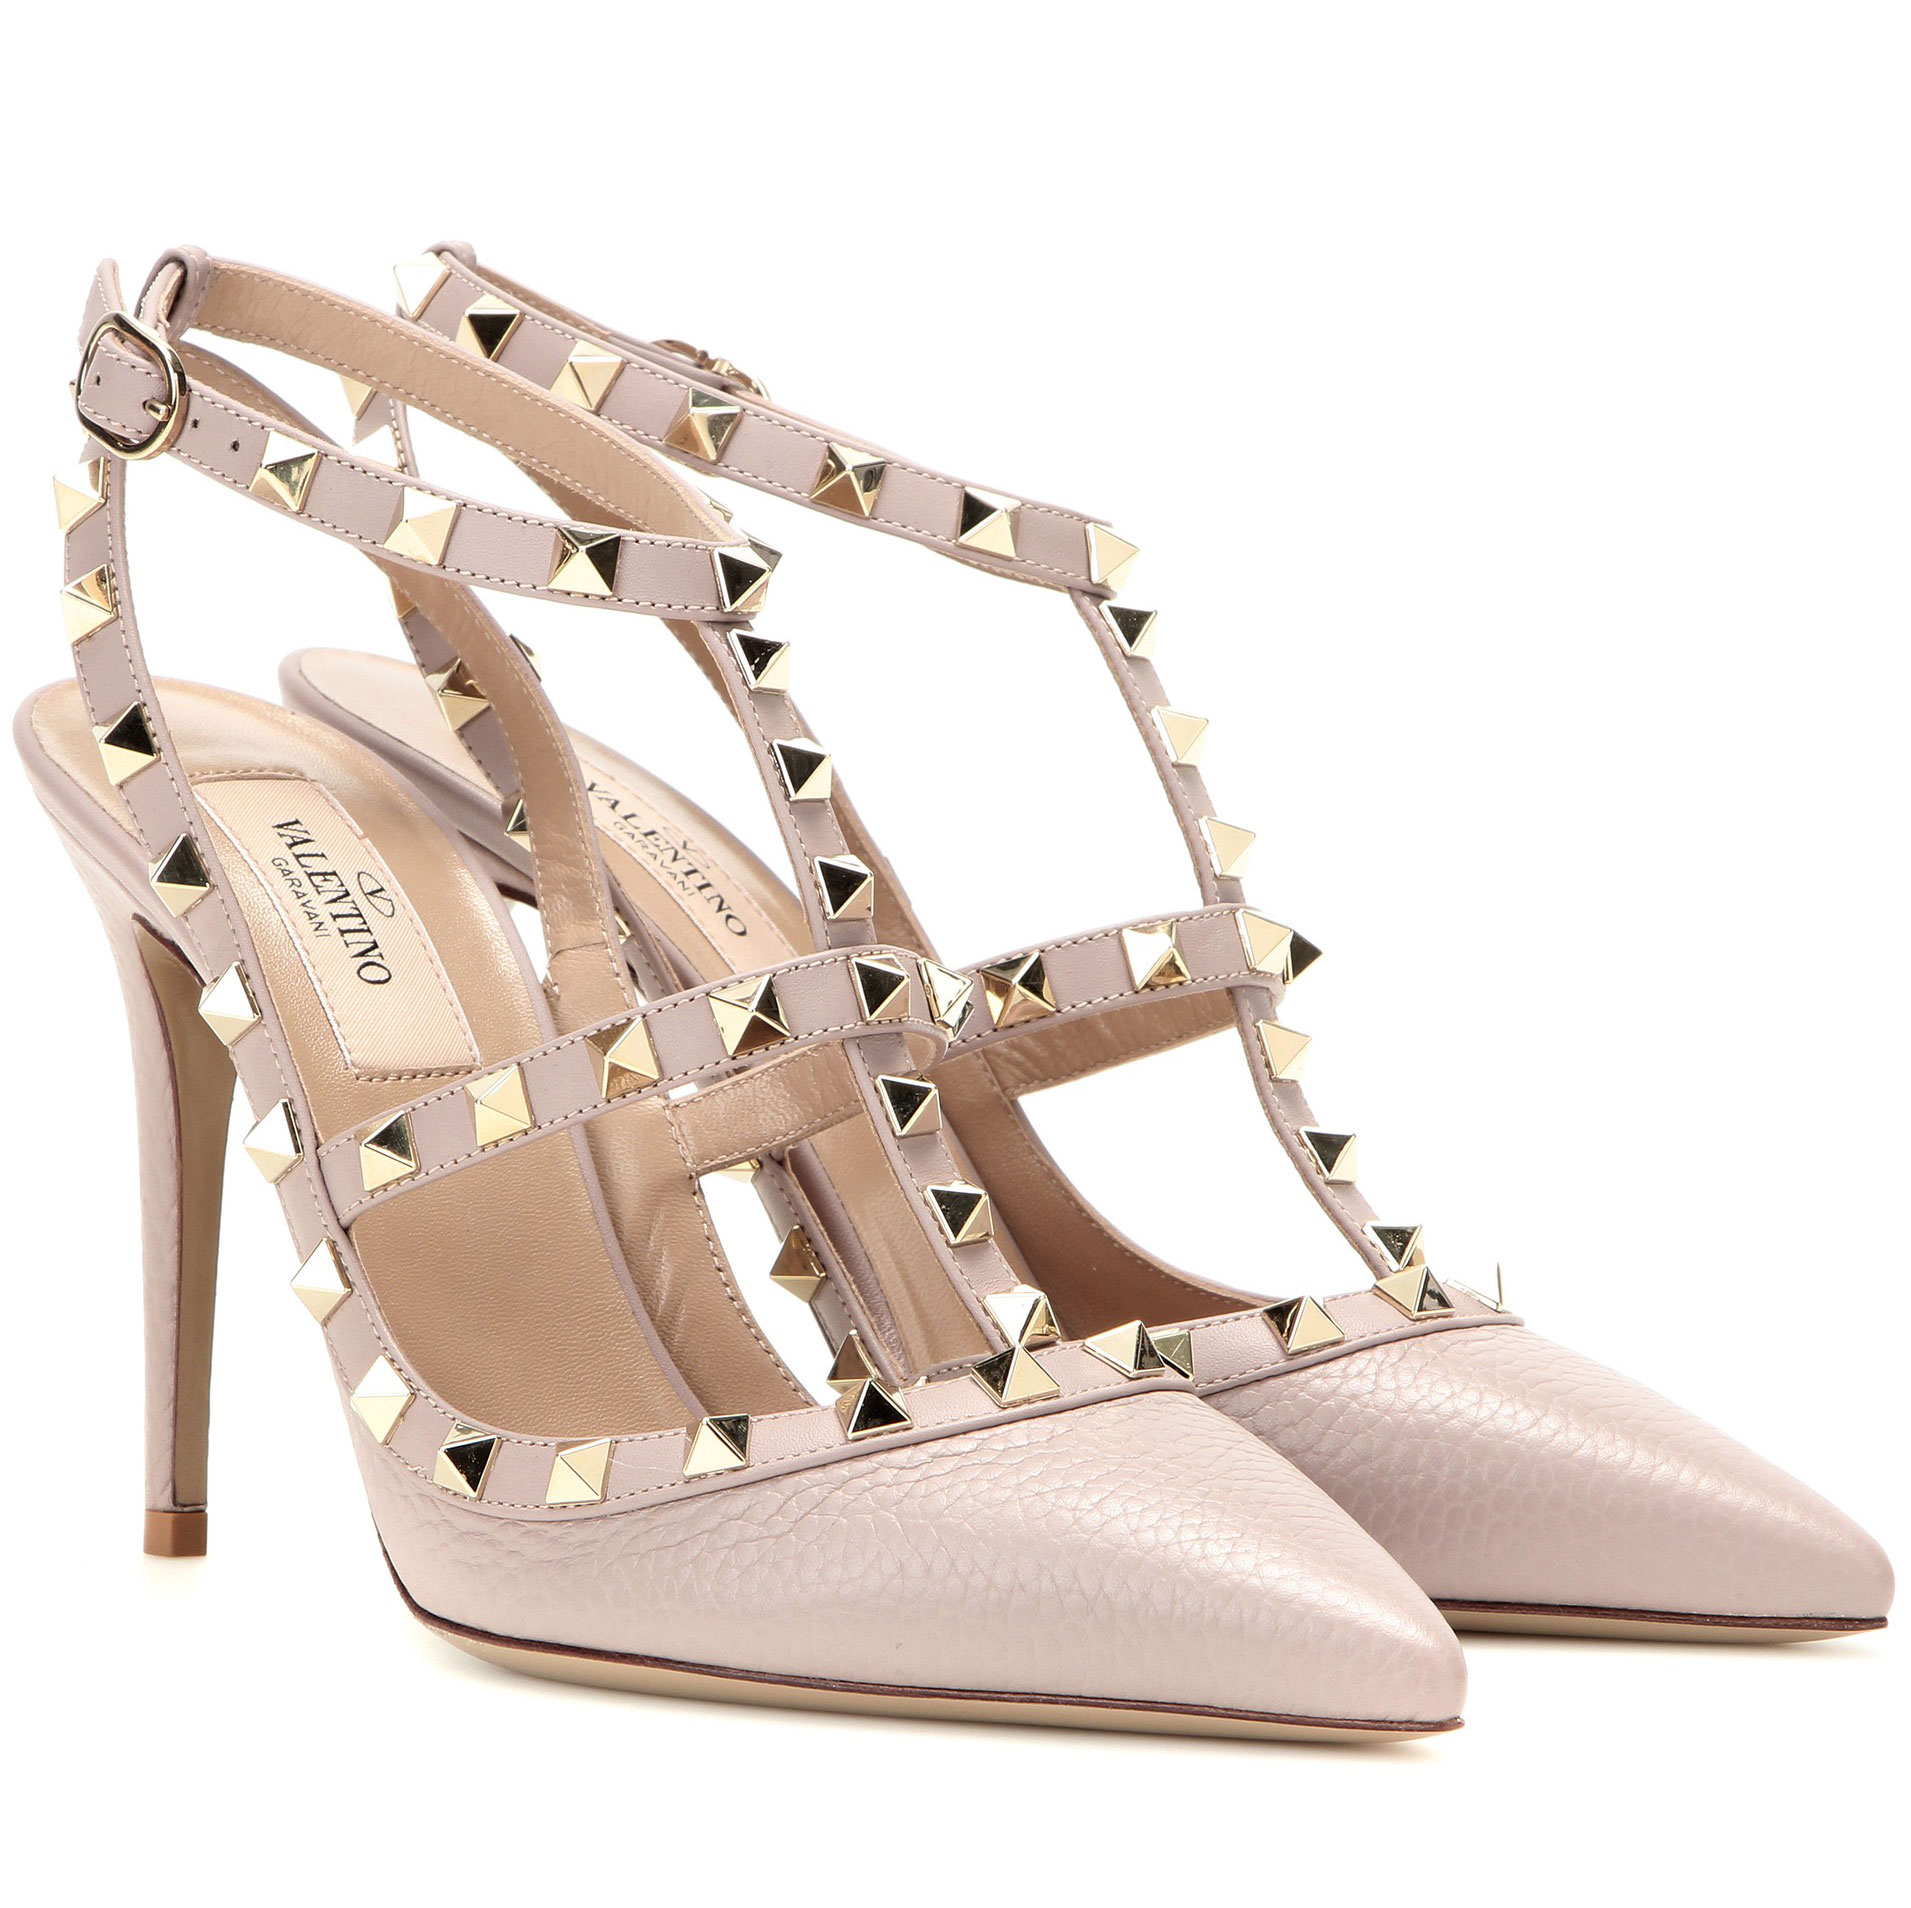 Valentino Shoes Femme